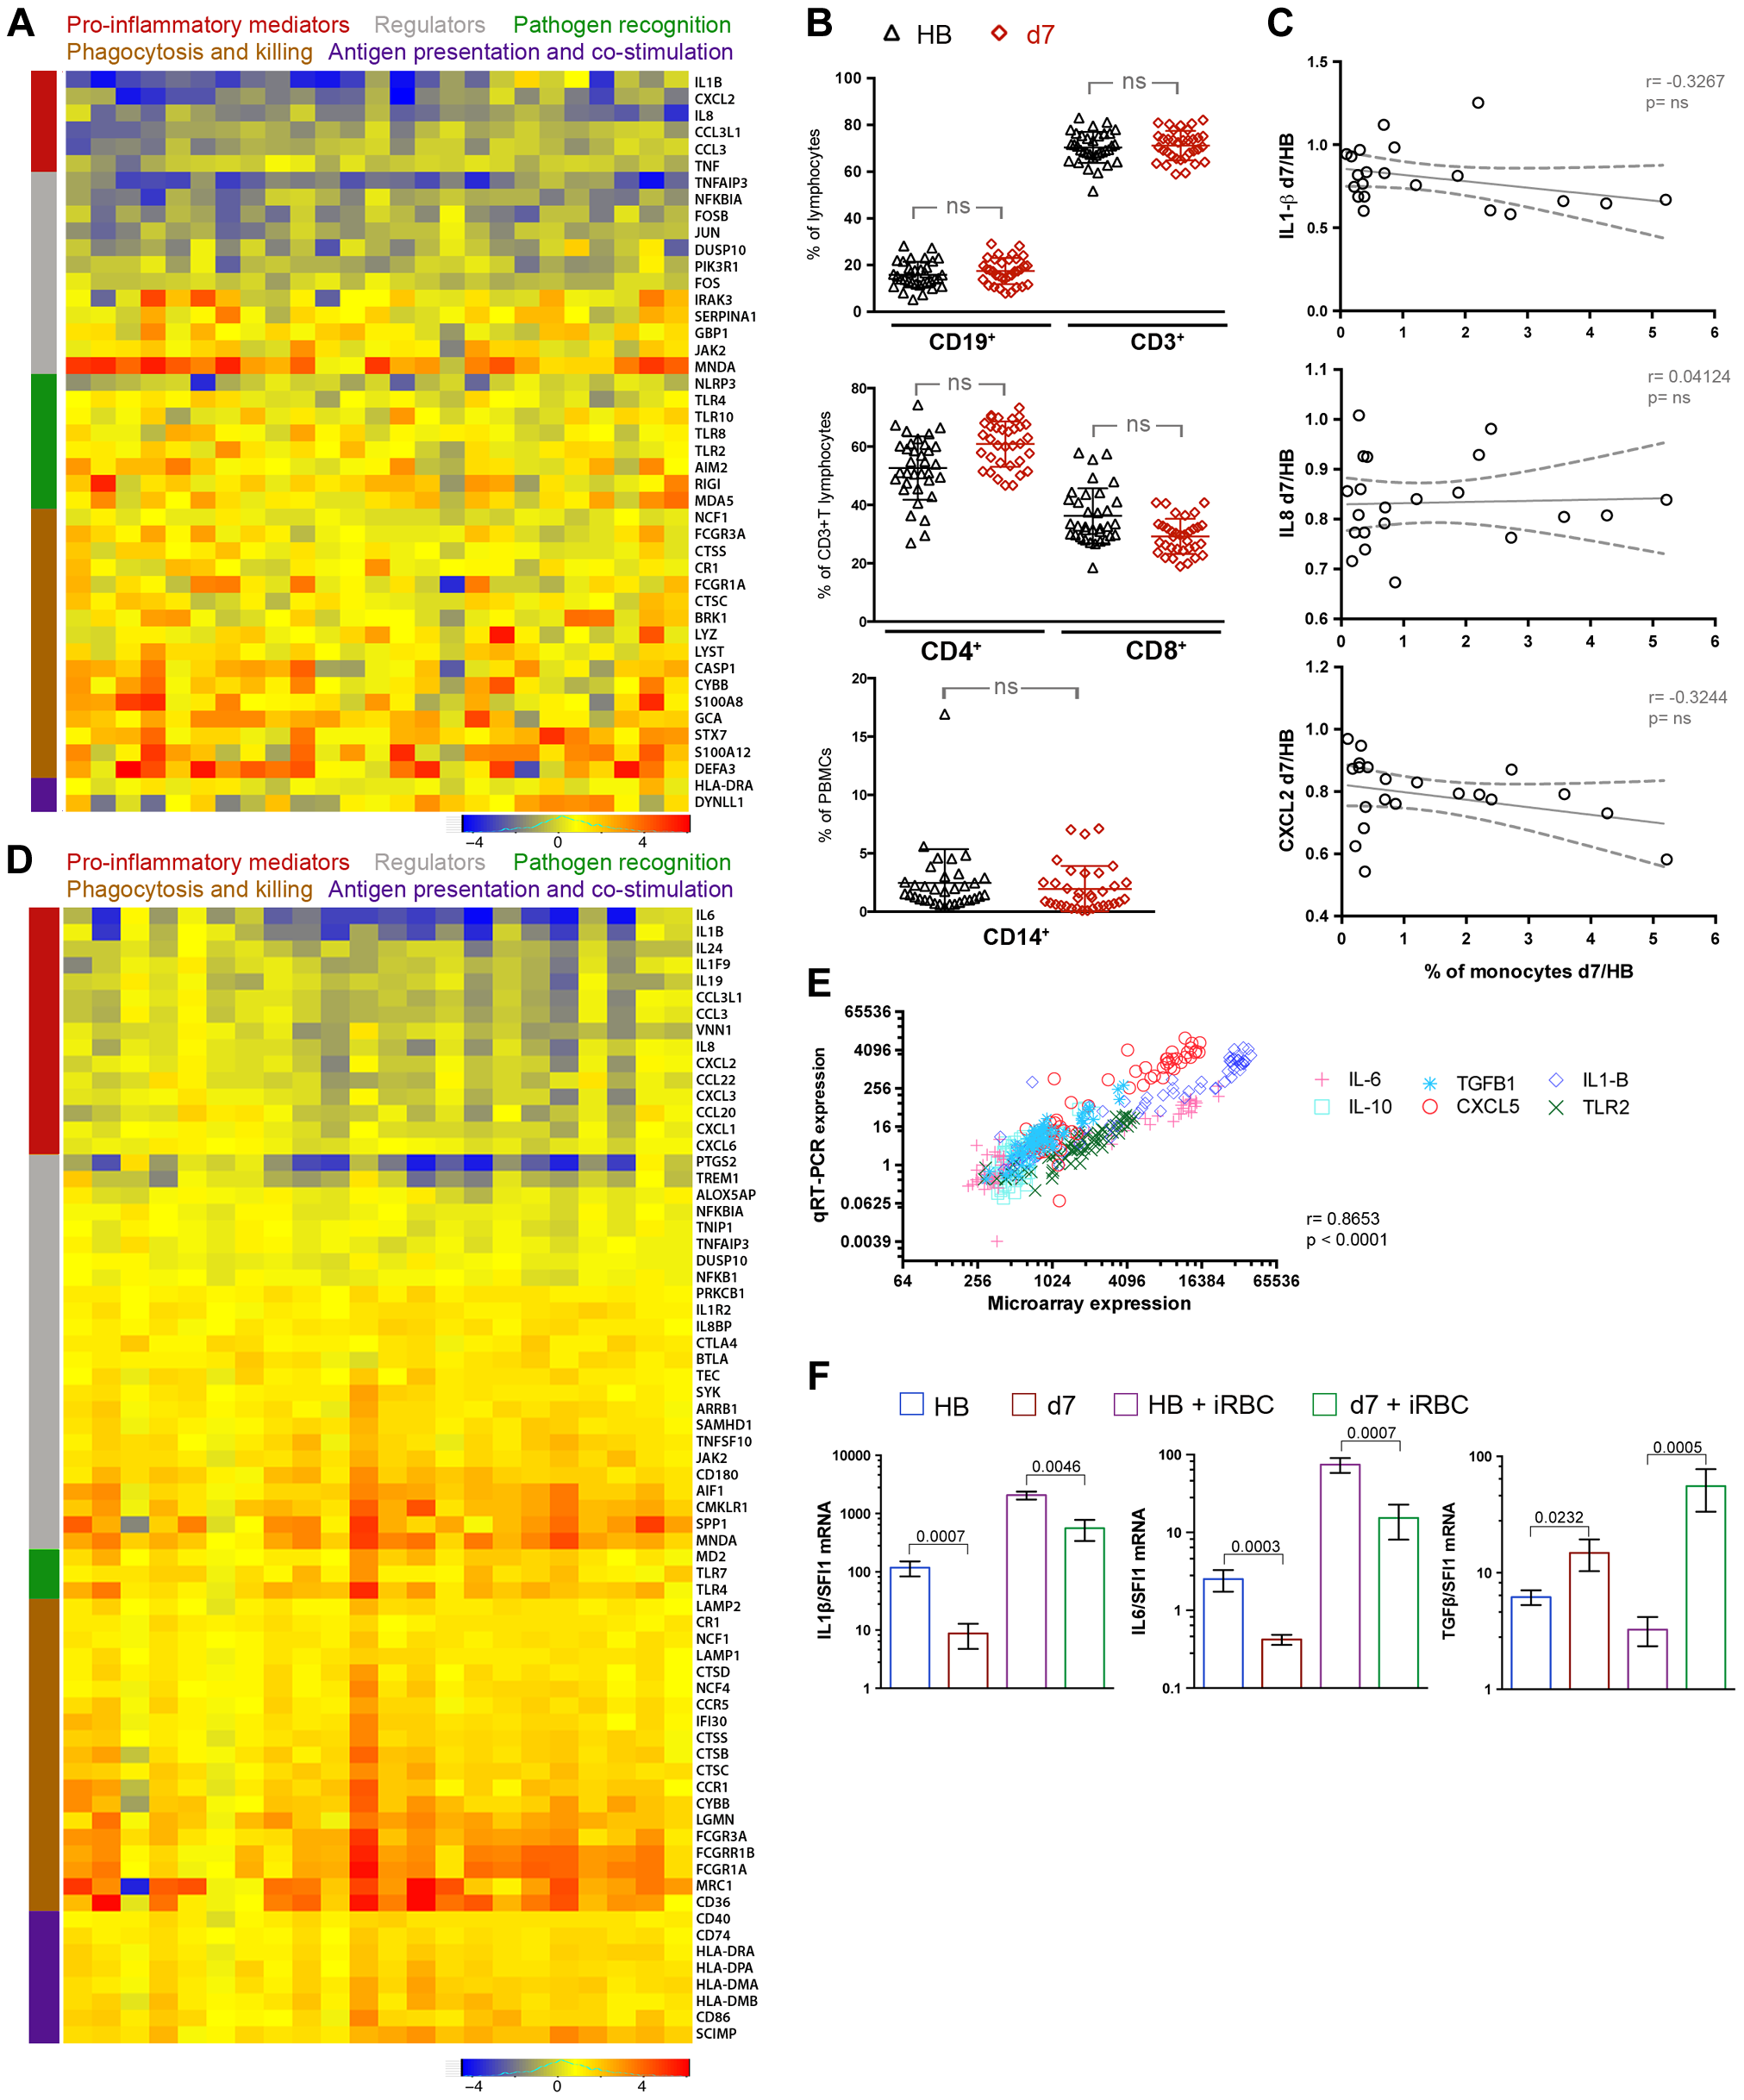 A molecular pattern of restrained inflammation and enhanced anti-parasite effector function upon <i>P. falciparum</i> re-exposure.